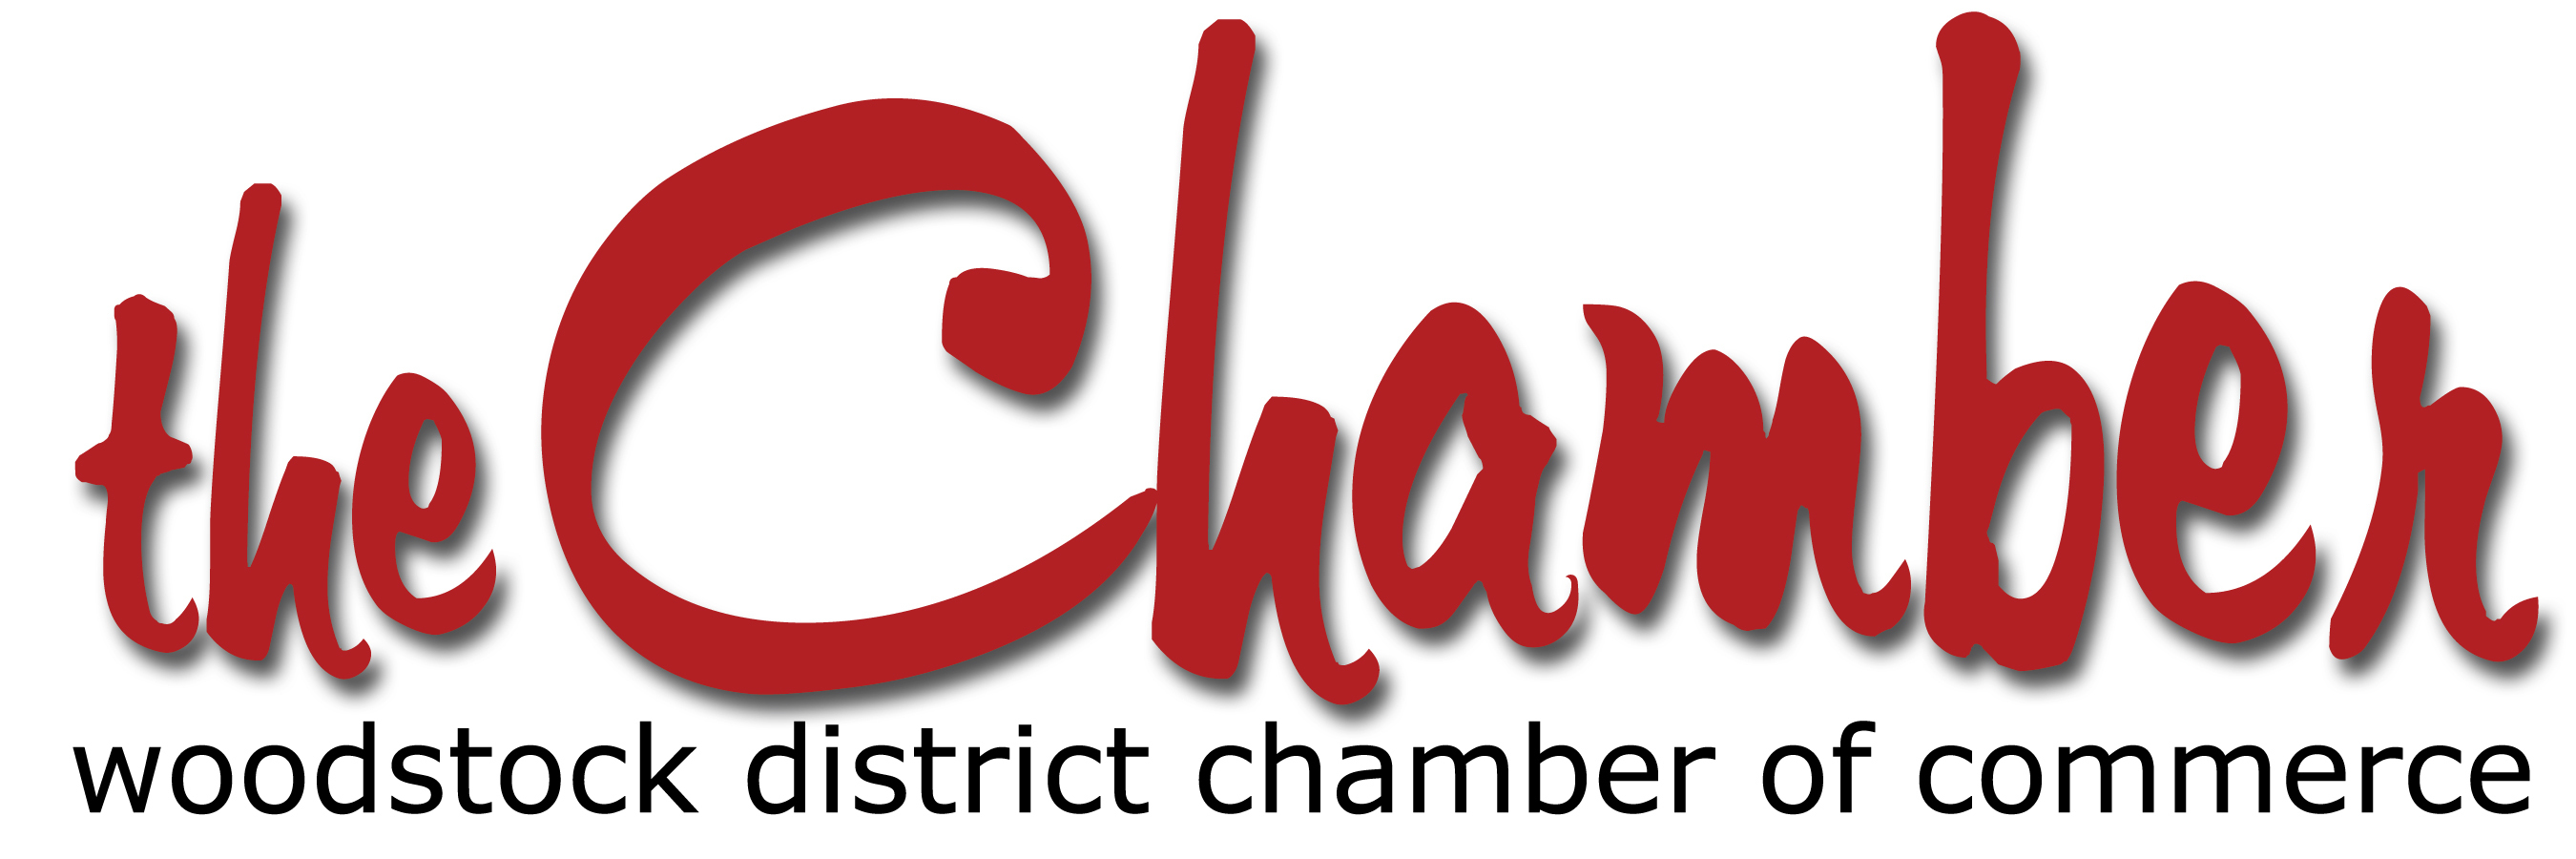 Woodstock District Chamber of Commerce